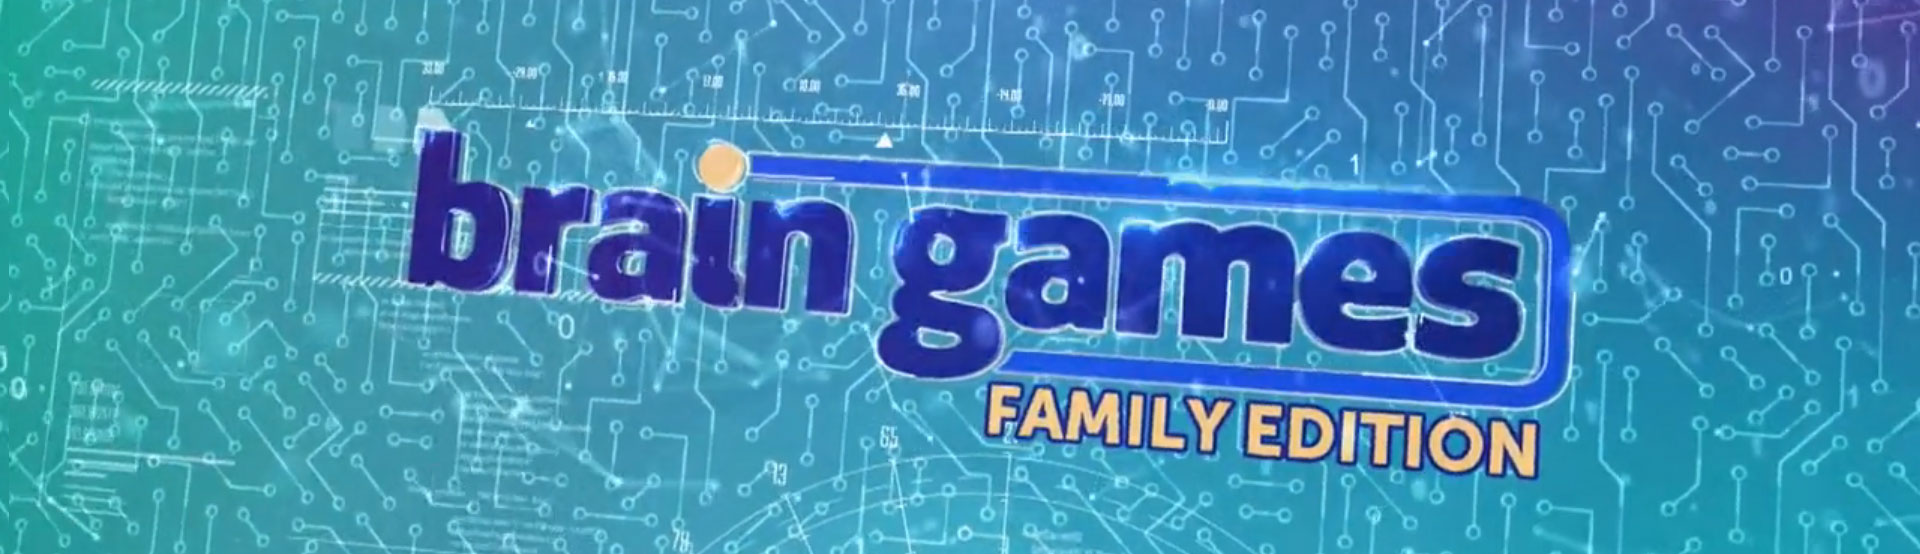 Banner image for Brain Games Family Edition